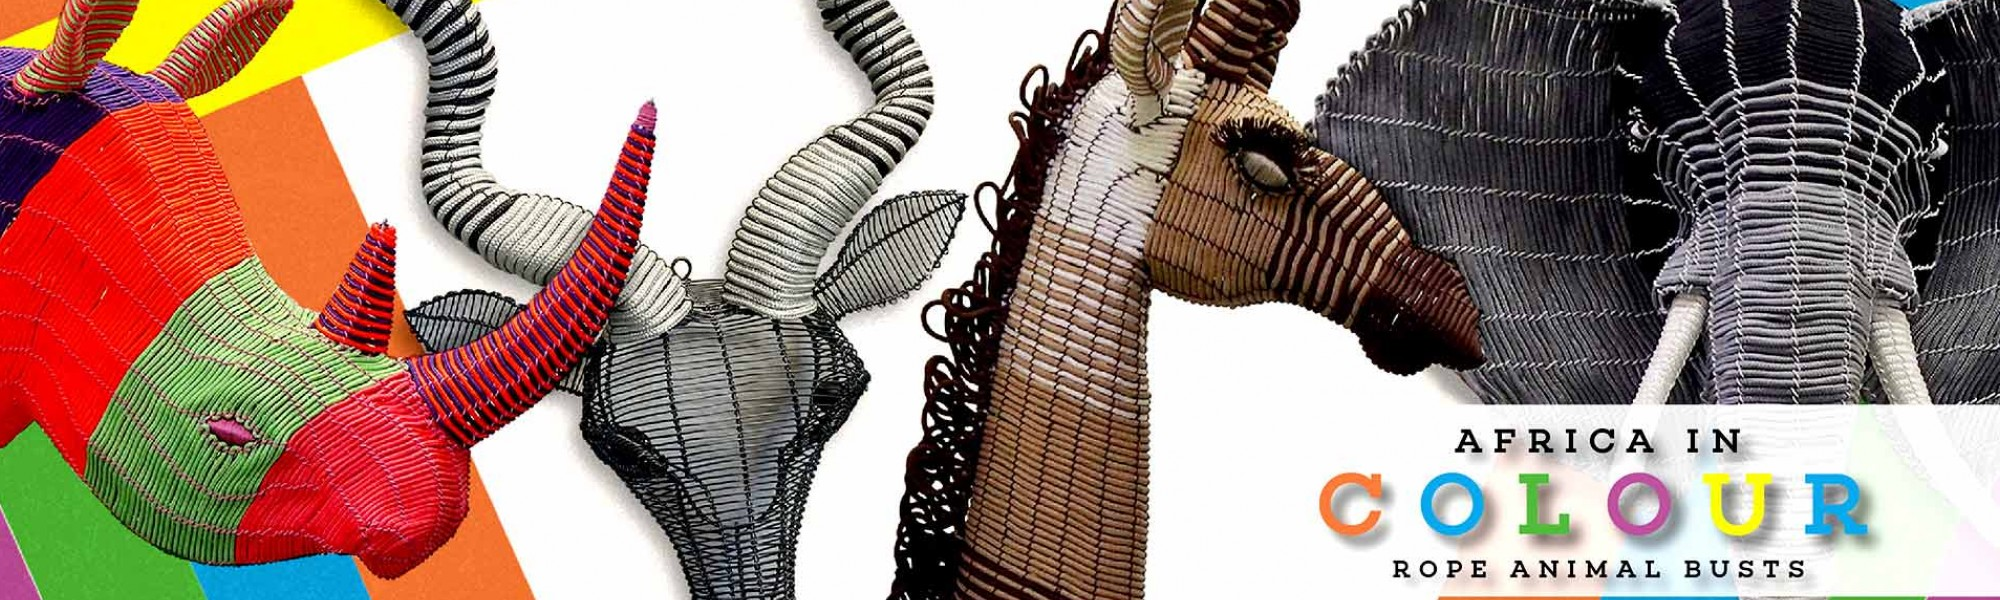 Africa in Colour Rope Animals